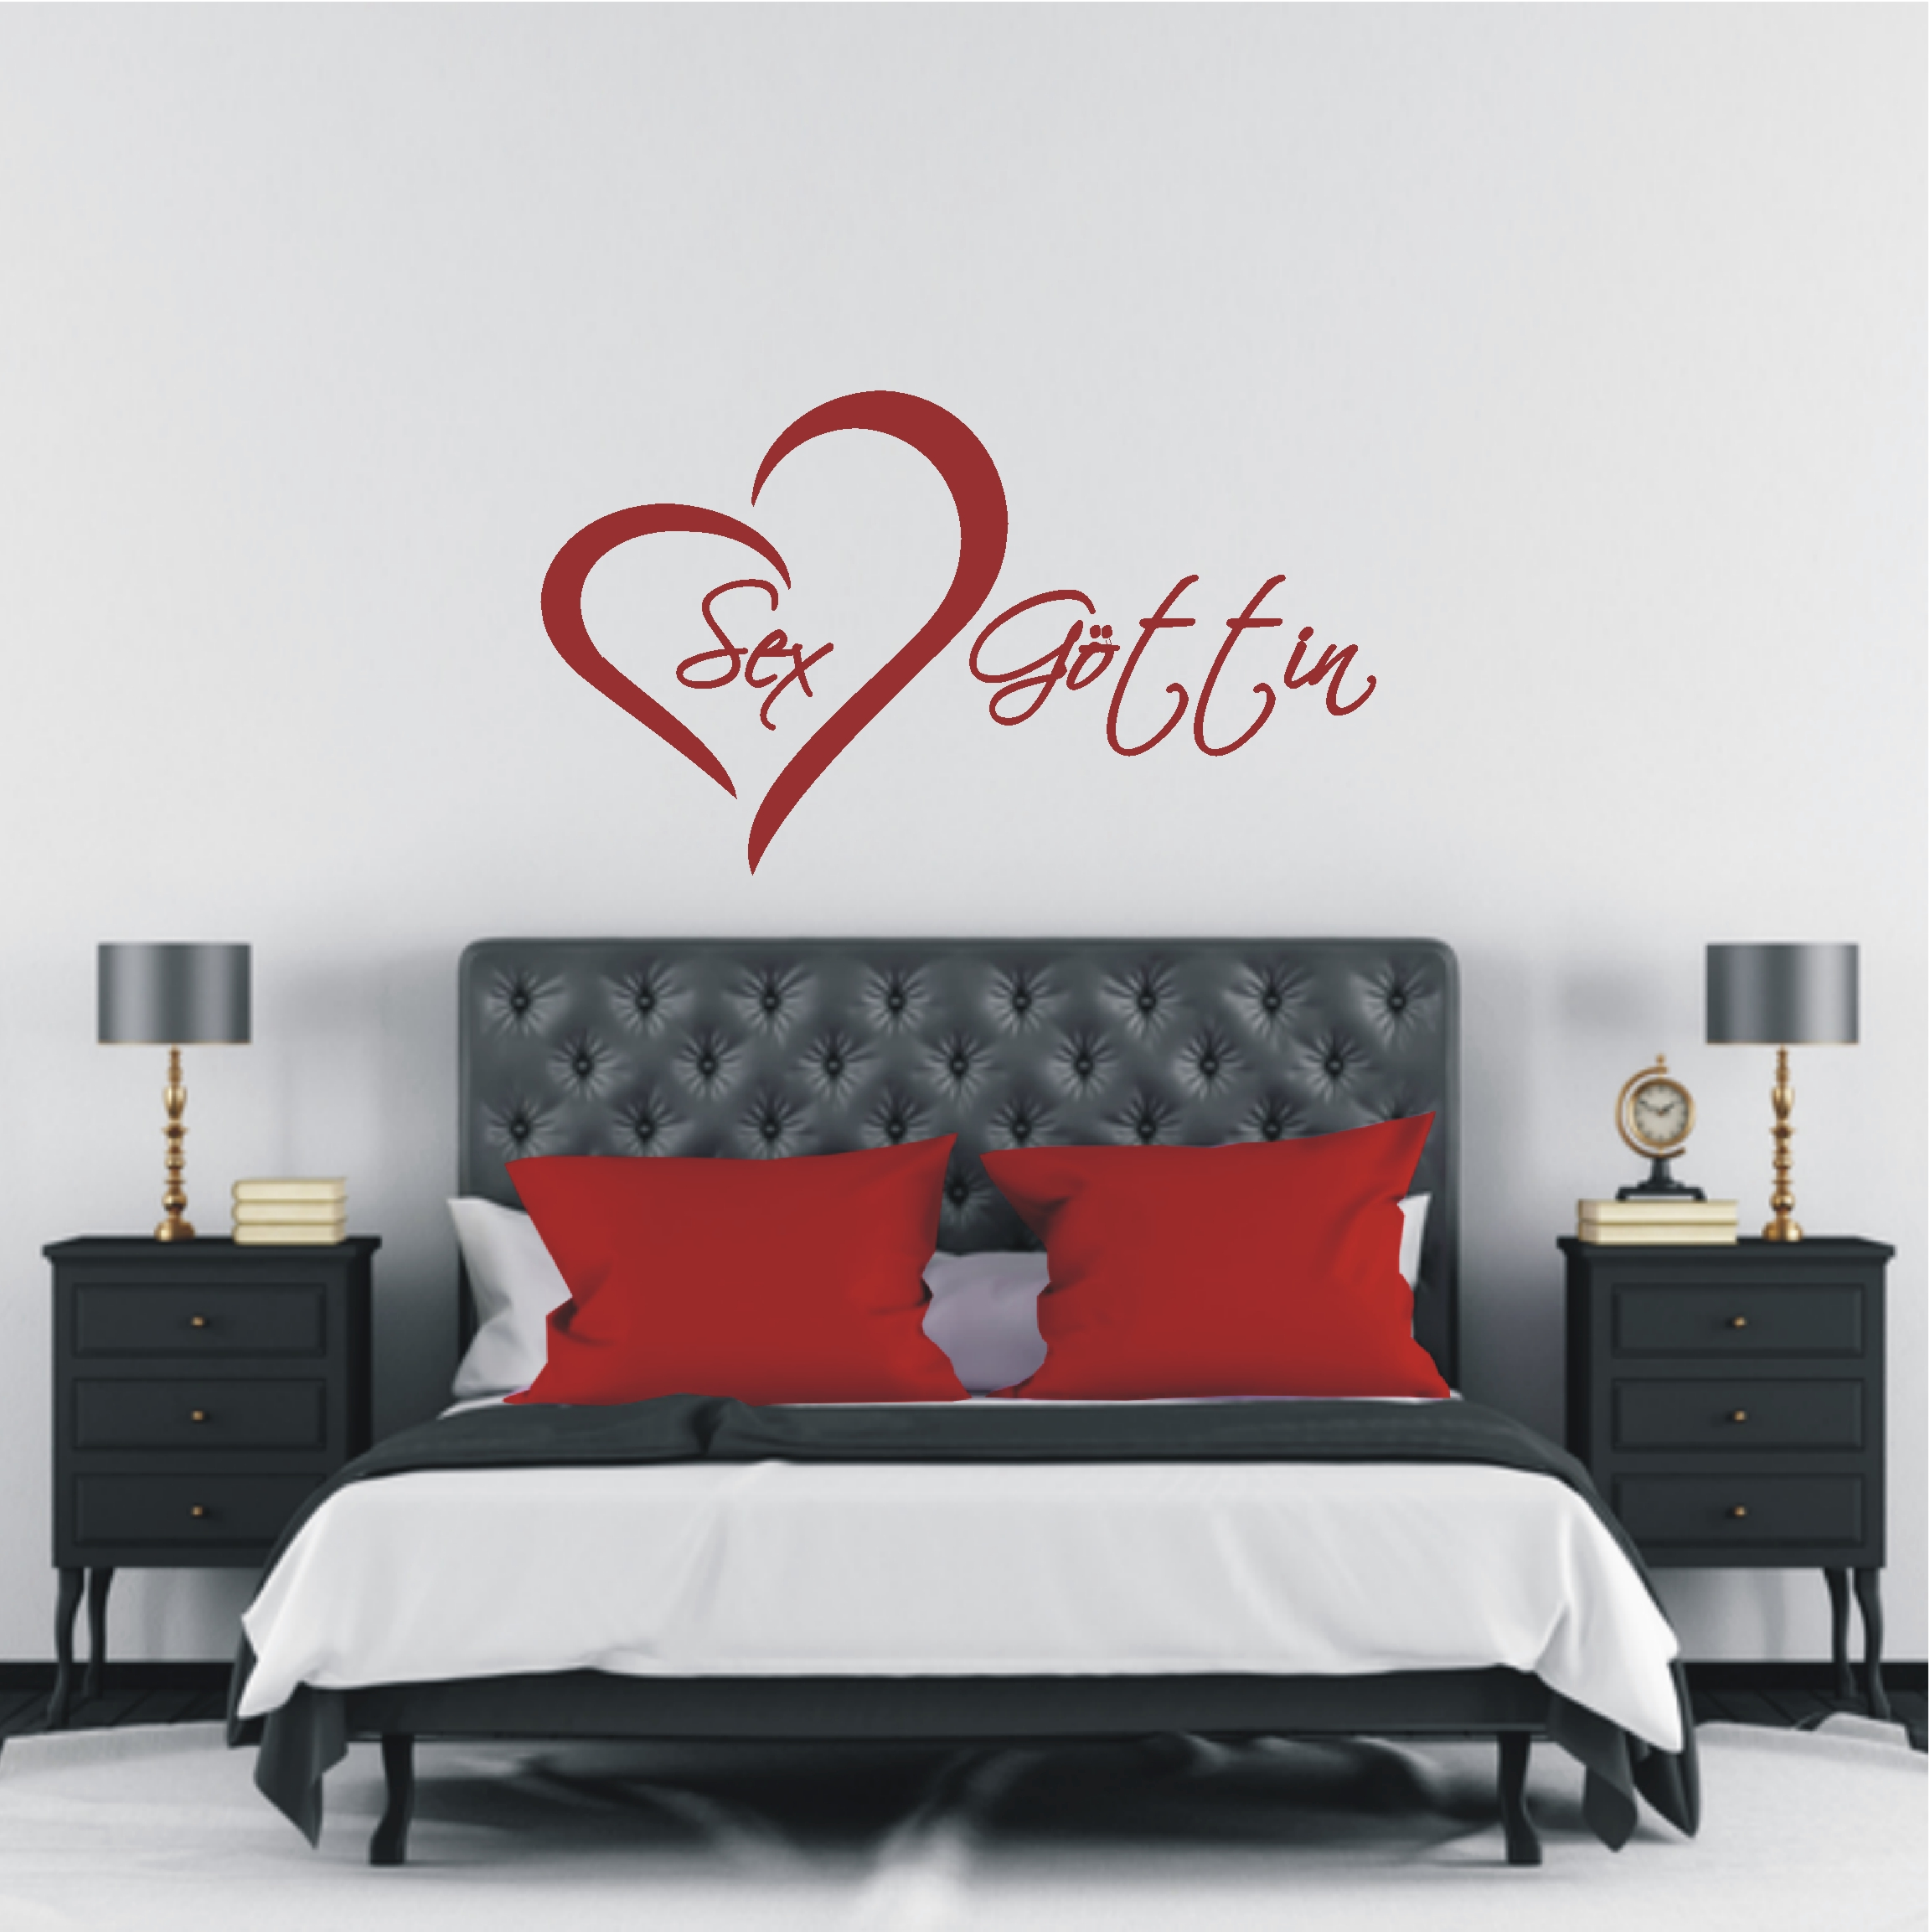 deko shop wandtattoo sex g ttin deko shop. Black Bedroom Furniture Sets. Home Design Ideas